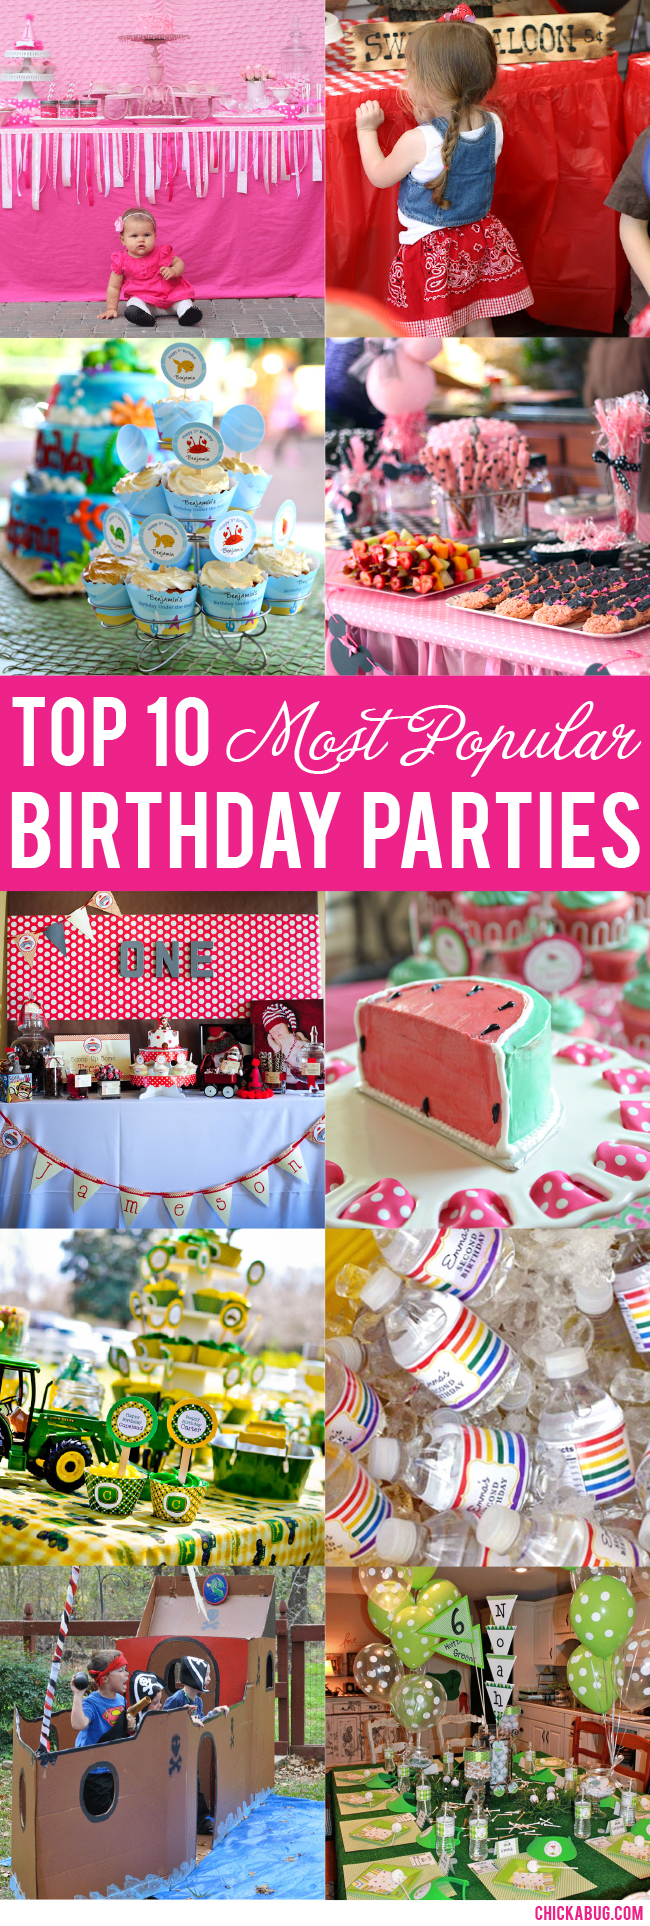 Top 10 Most Popular Birthday Parties Chickabug